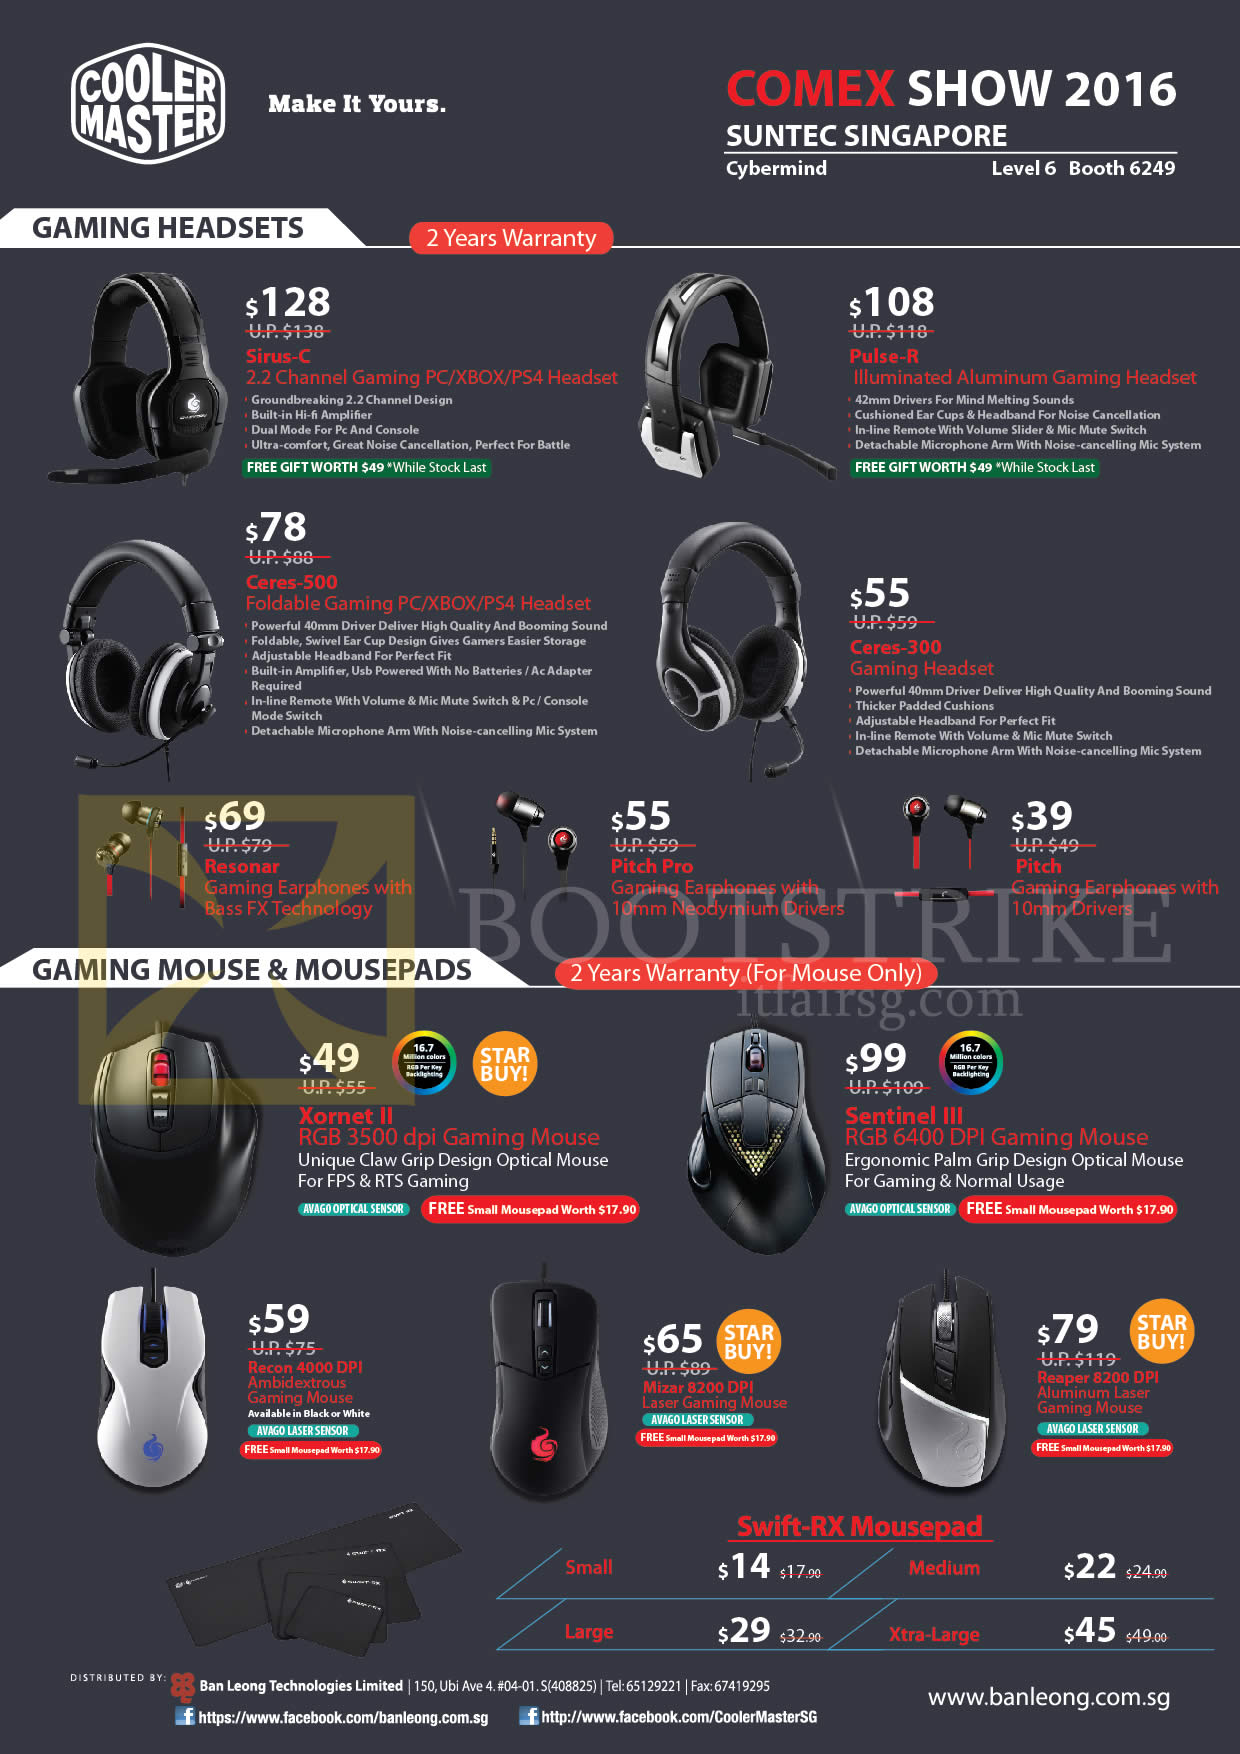 COMEX 2016 price list image brochure of Cybermind Cooler Master Gaming Headsets, Mouse, Mousepads, Sirus-C, Pulse-R, Ceres-500 300, Resonar, Pitch Pro, Pitch, Xornet II, Sentinel III, Recon 4000, Mizar 8200 DPI, Reaper 8200 DPI